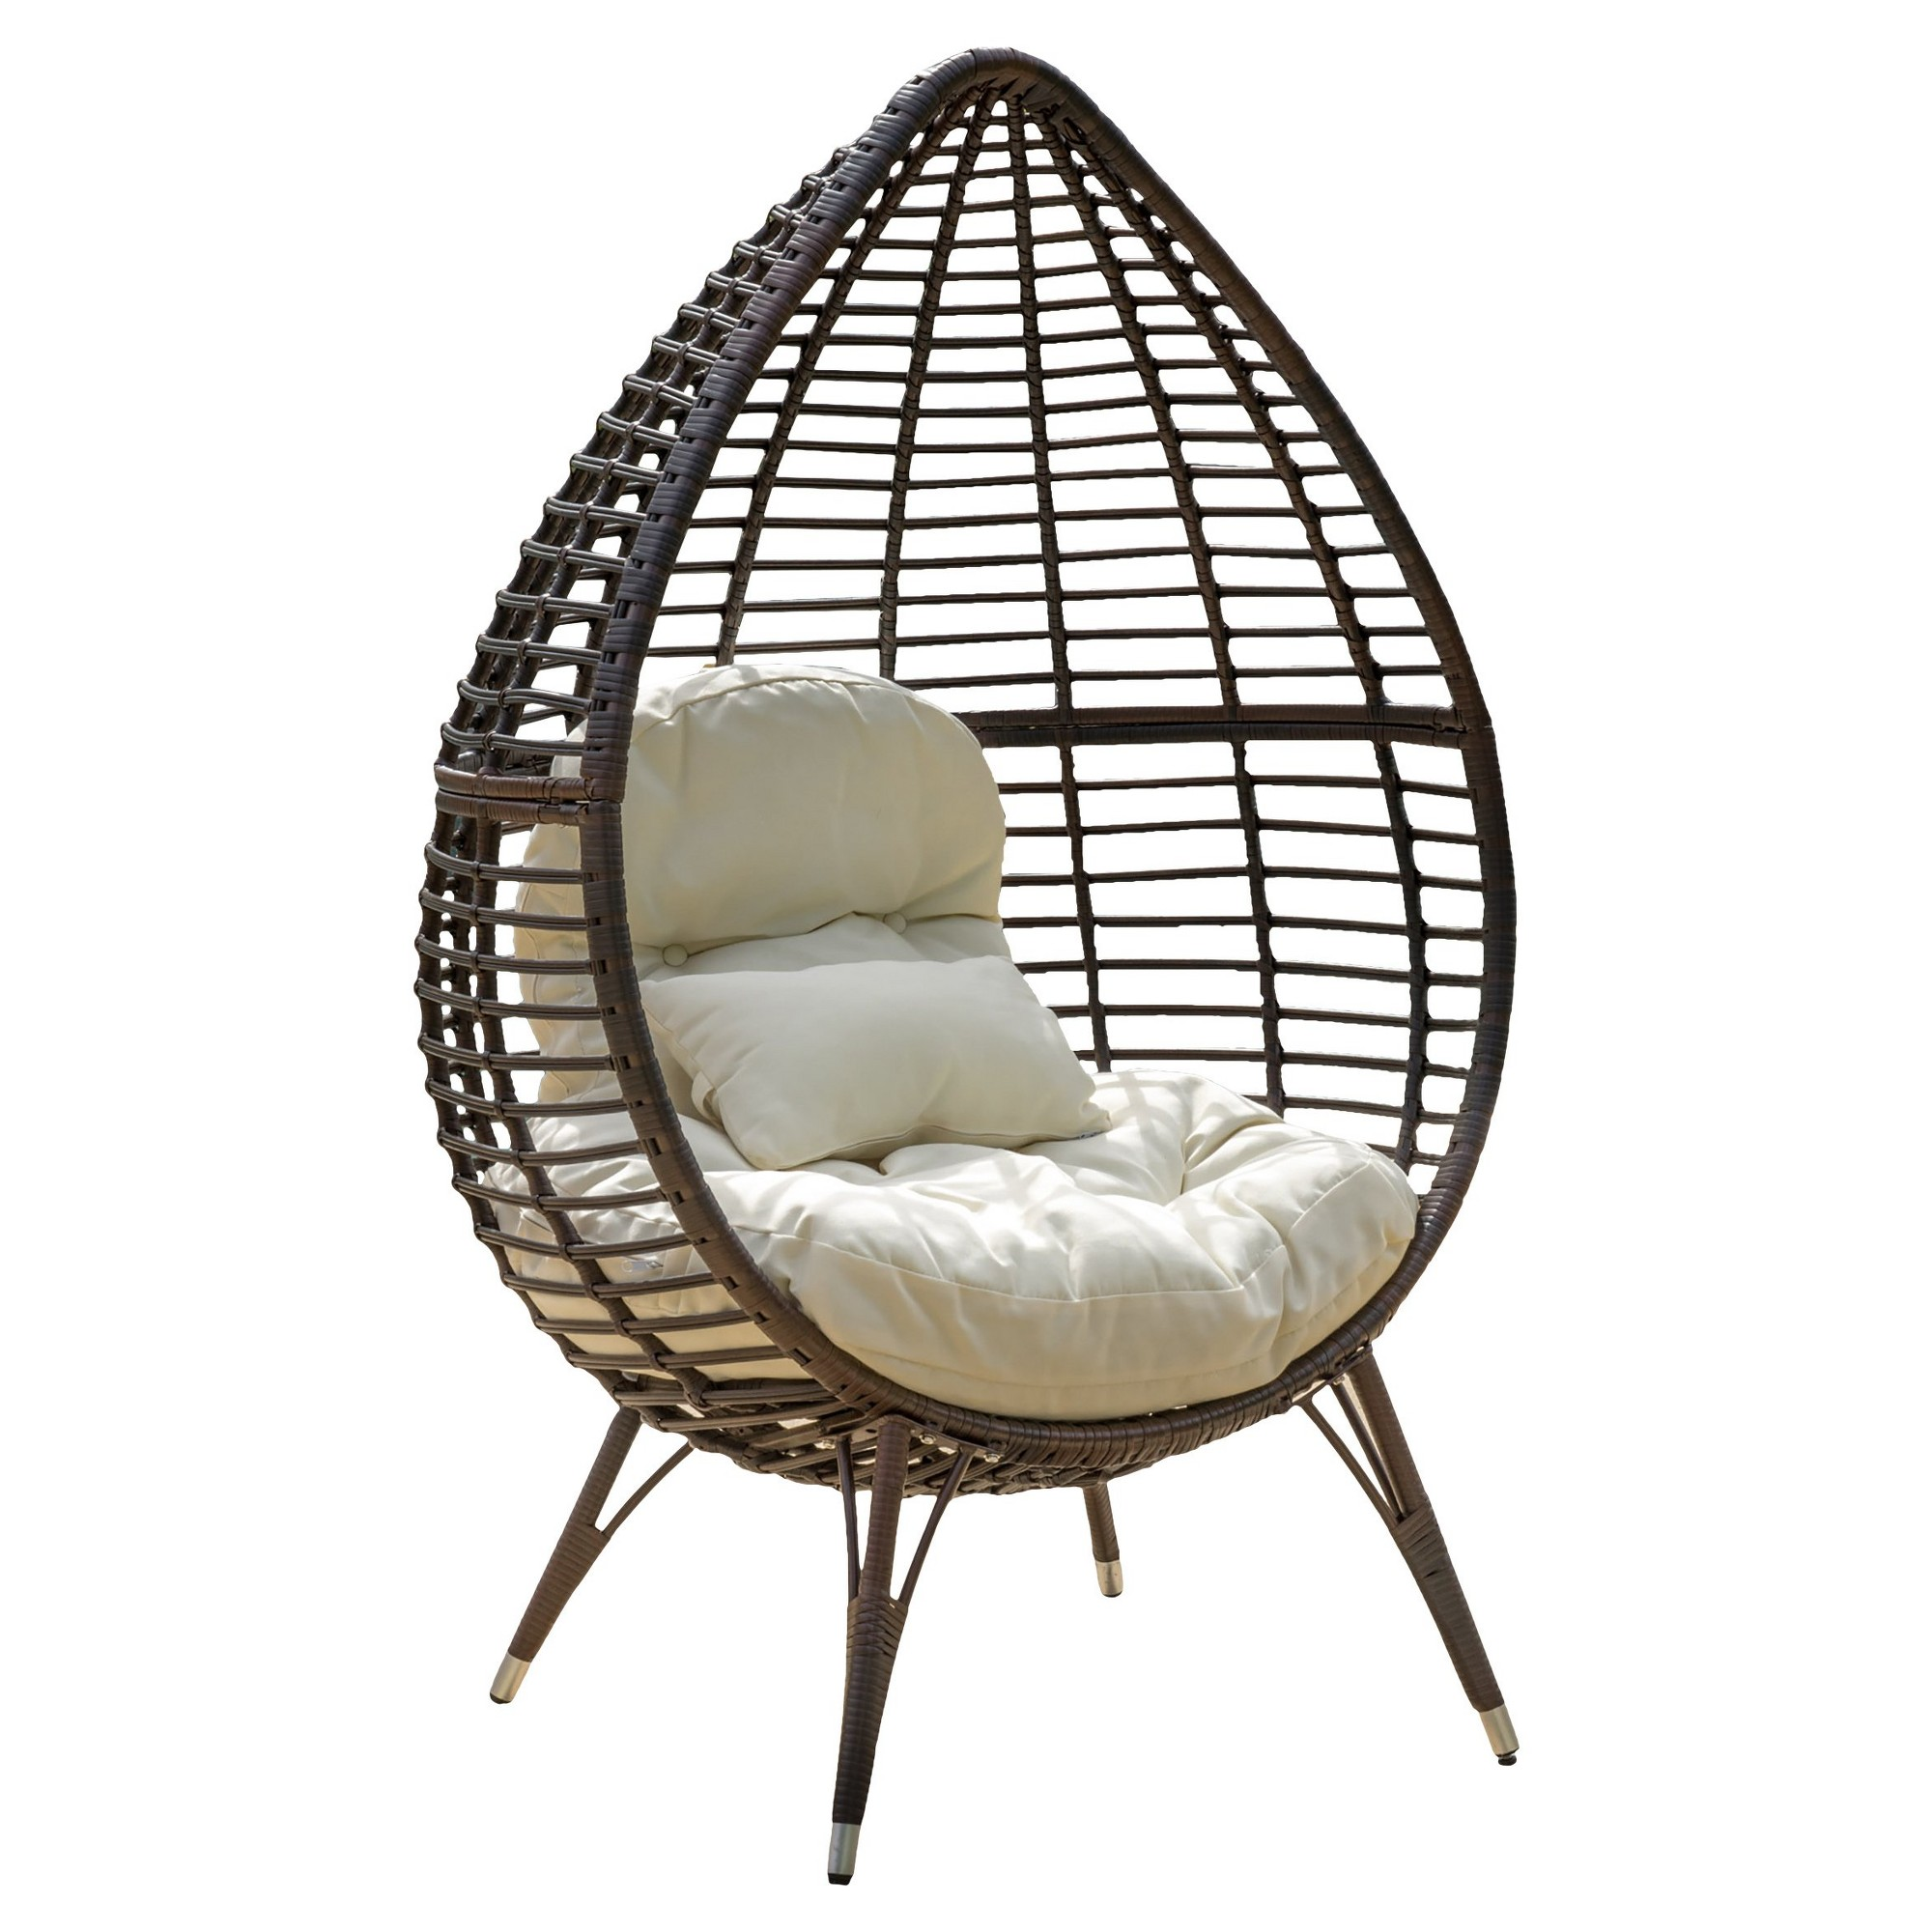 Phenomenal Cutter Teardrop Wicker Patio Lounge Chair With Cushion Ocoug Best Dining Table And Chair Ideas Images Ocougorg